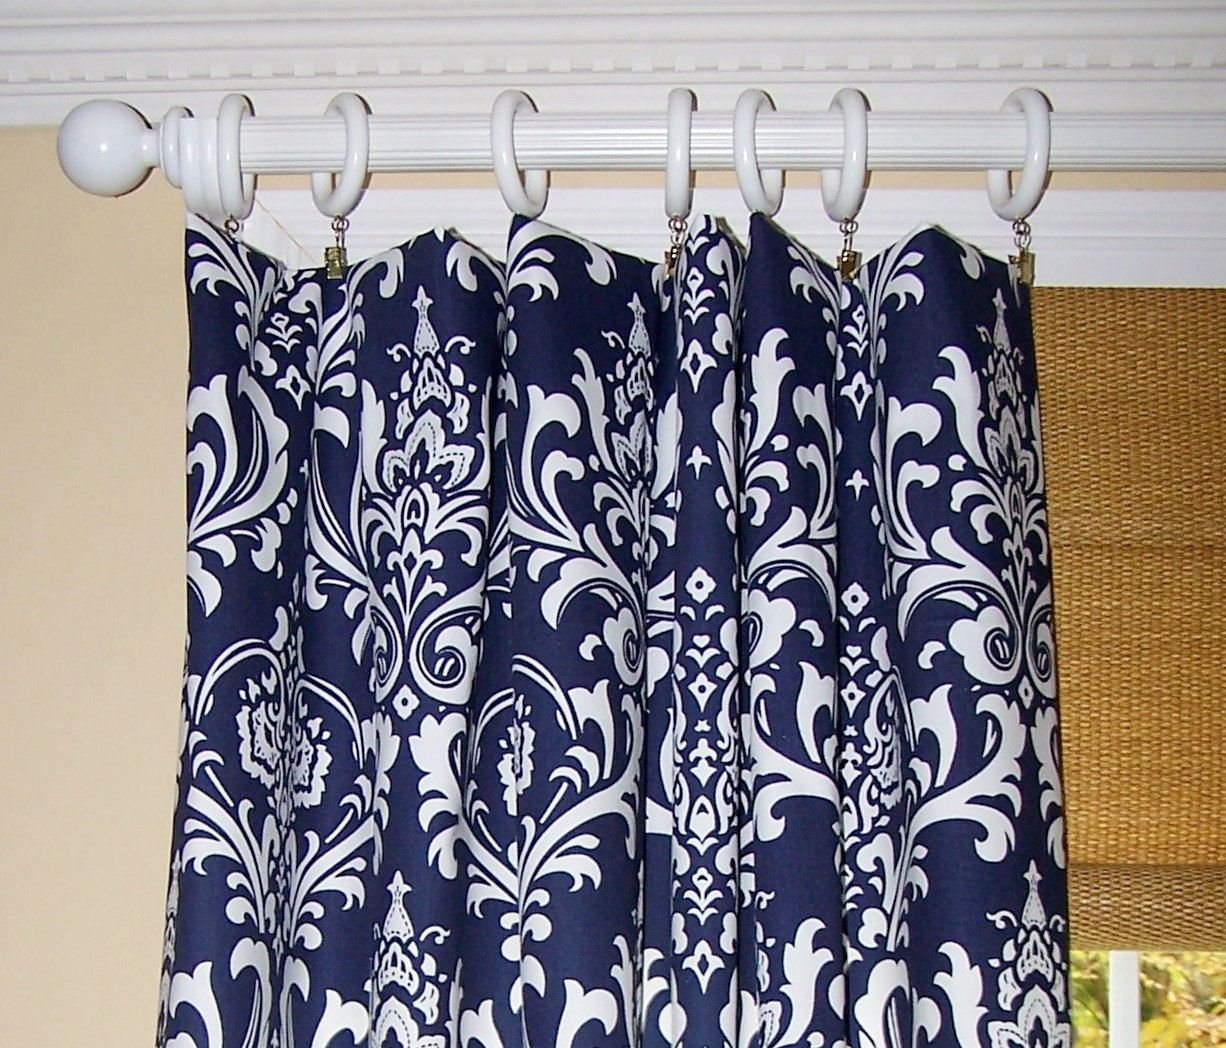 tfile white trend valance inspiring navy and curtains image gray of kitchen curtain ideas blue